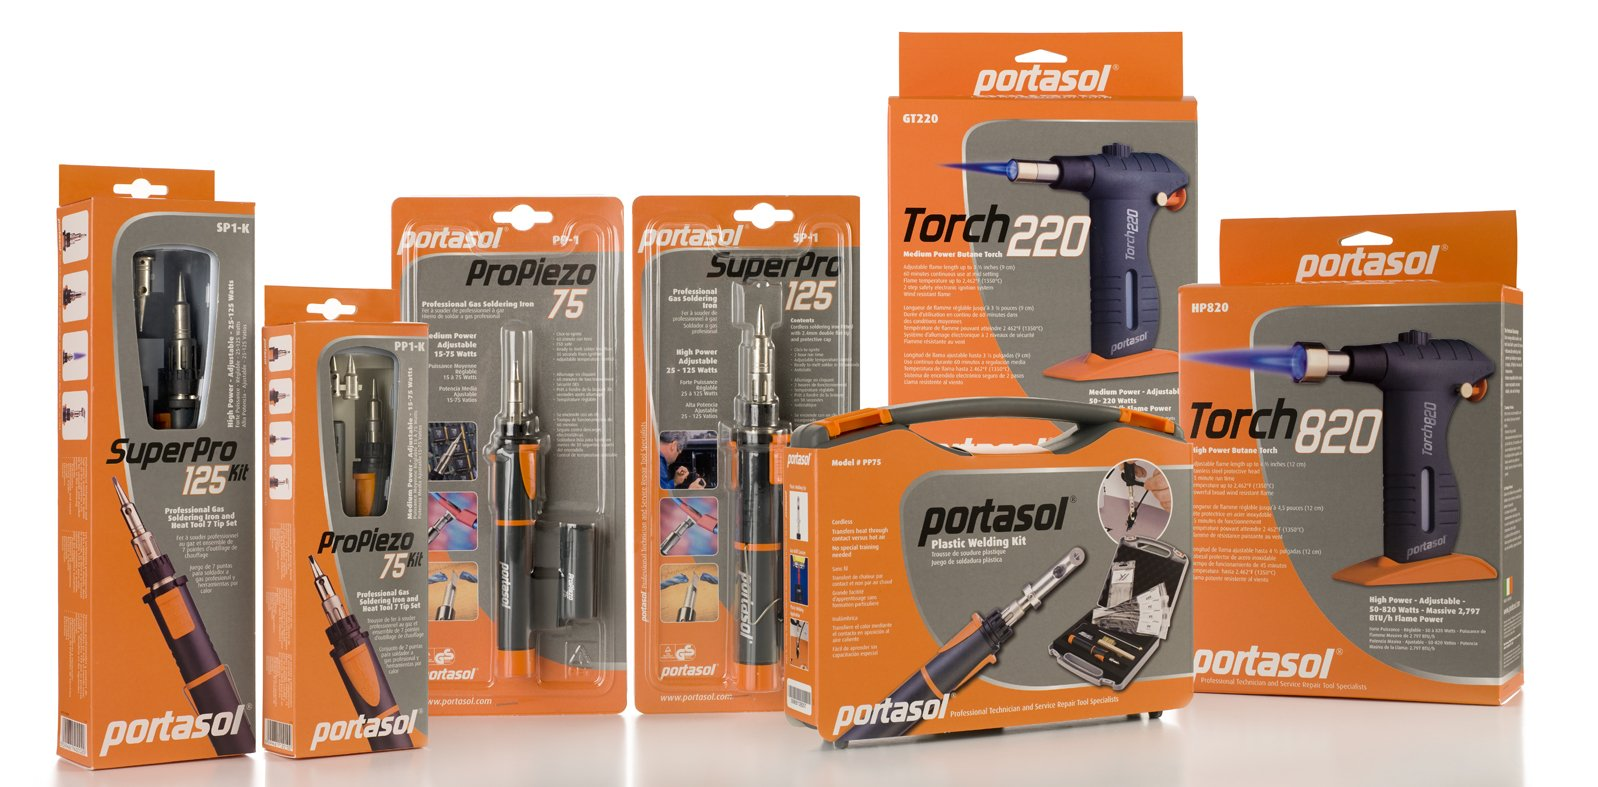 Portasol 011280240 Pro Piezo 75 Watt Butane Powered Soldering Iron